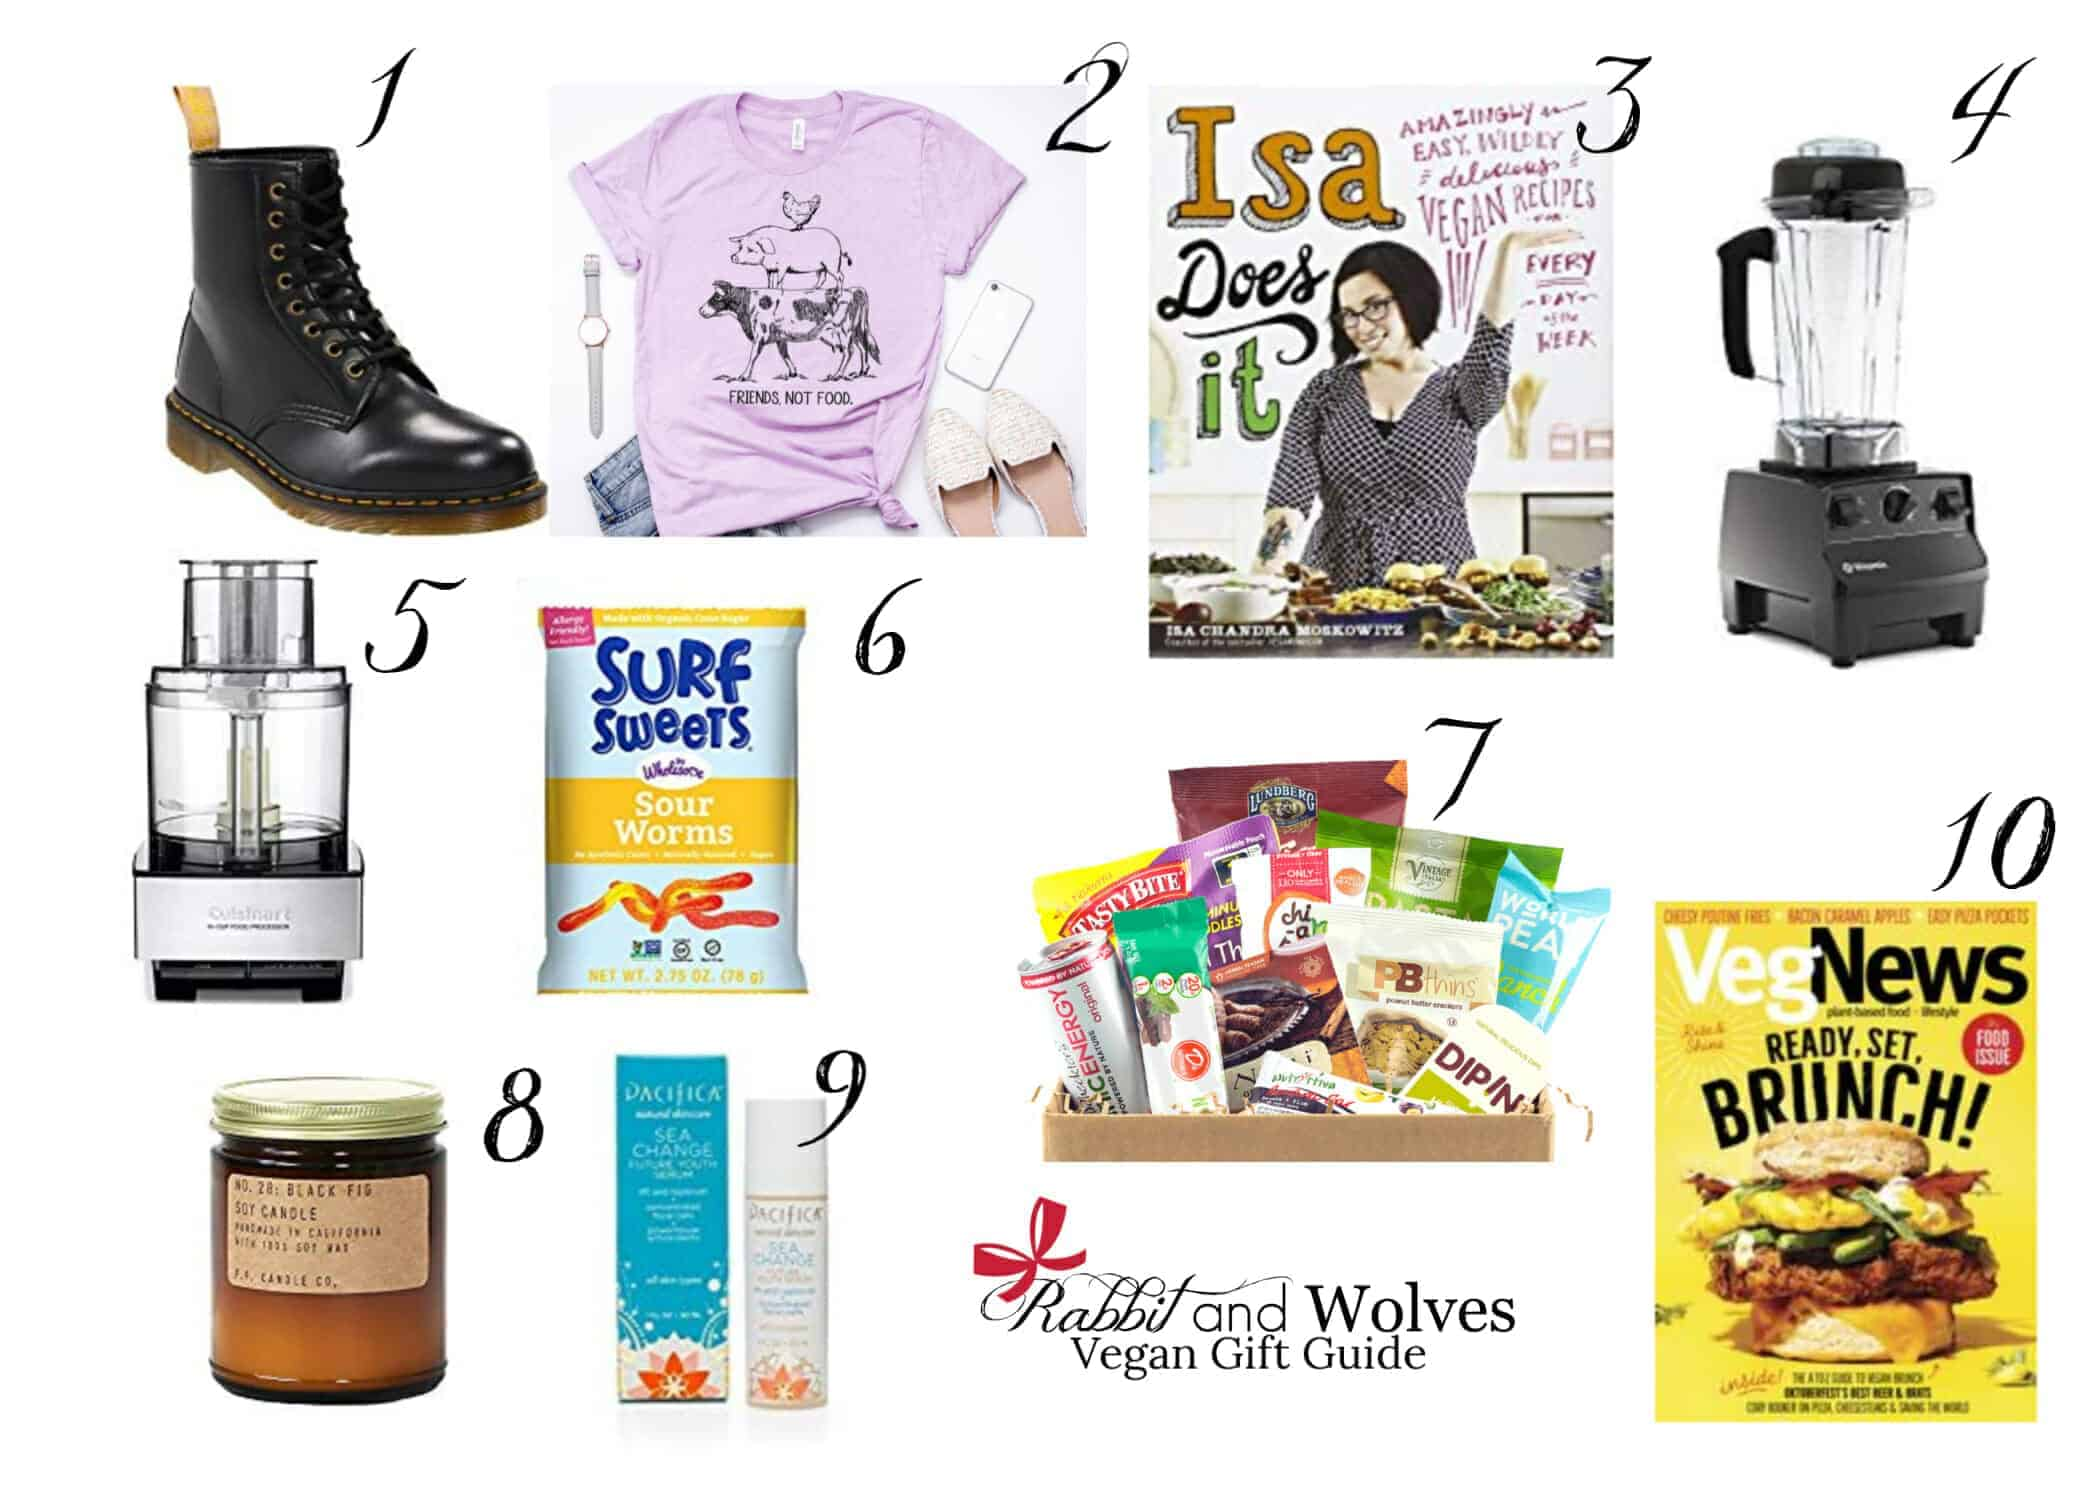 Vegan Gift Guide - Rabbit and Wolves